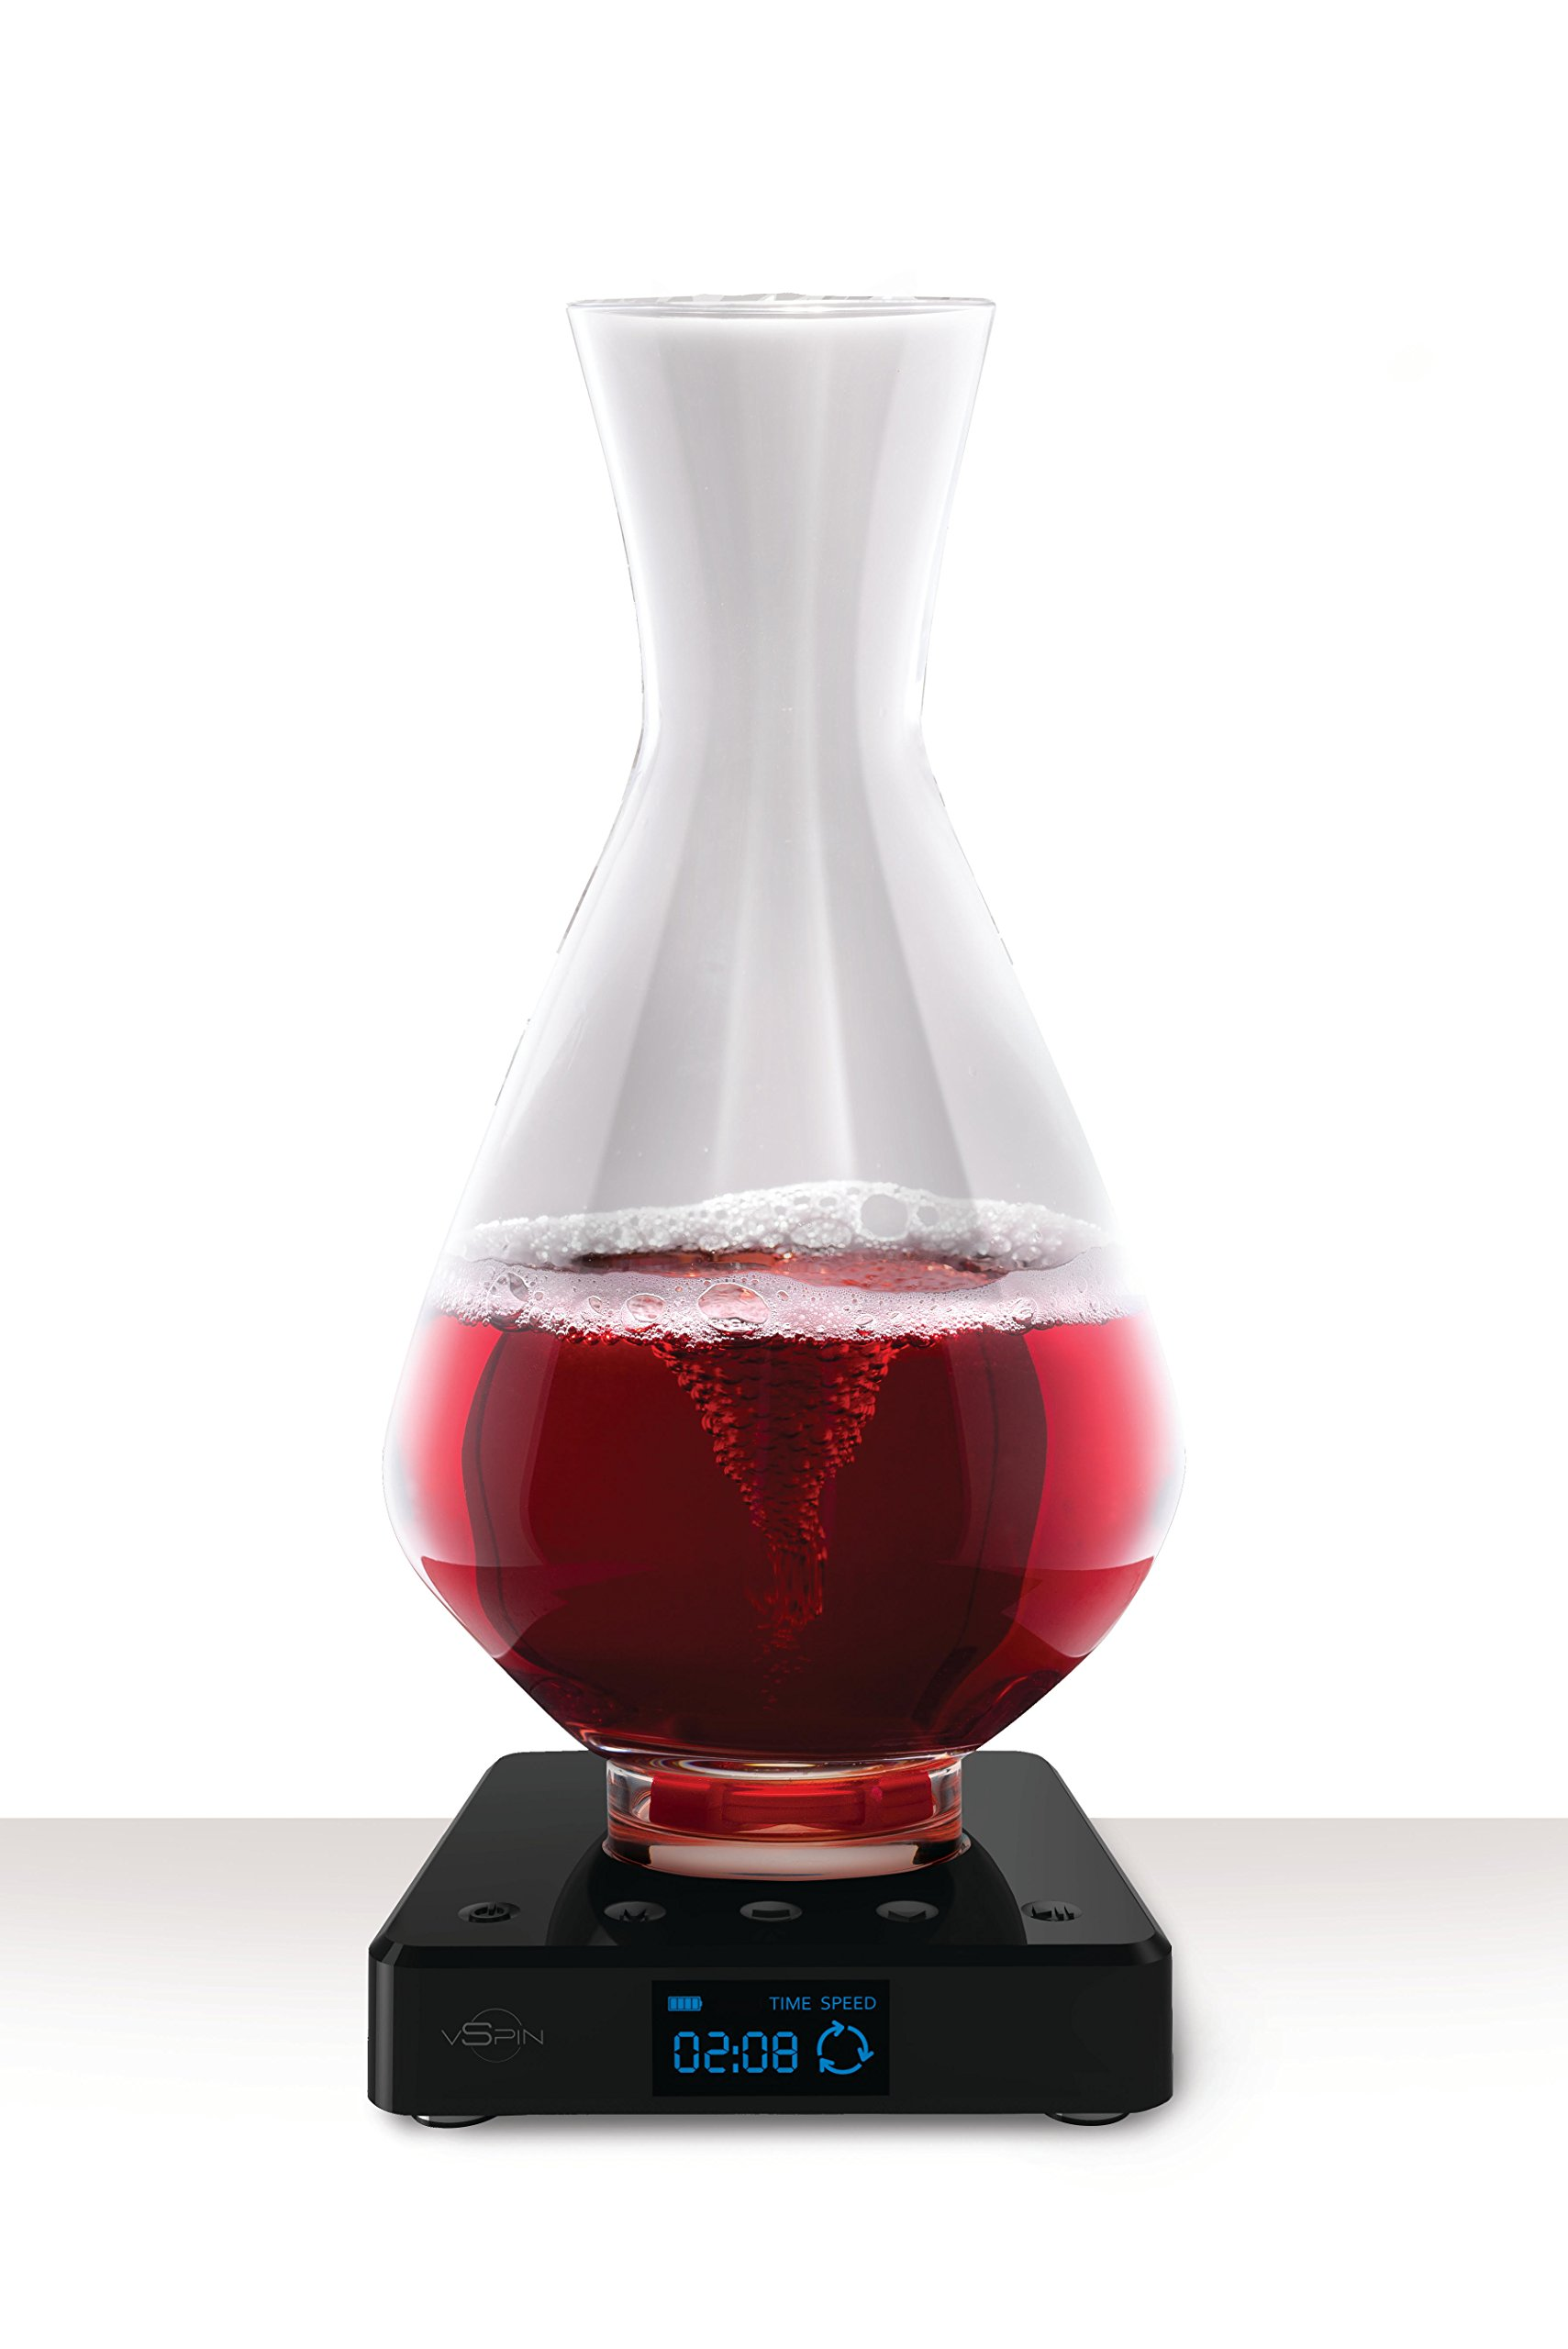 vSpin / Spiegelau Active Wine Decanter - Hand Assembled 100% Lead-free German Crystal - Electric Wine Aerator set - Original Patented Decanting Carafe - Elegant Wine Gift Luxury Wine accessories by VSPIN